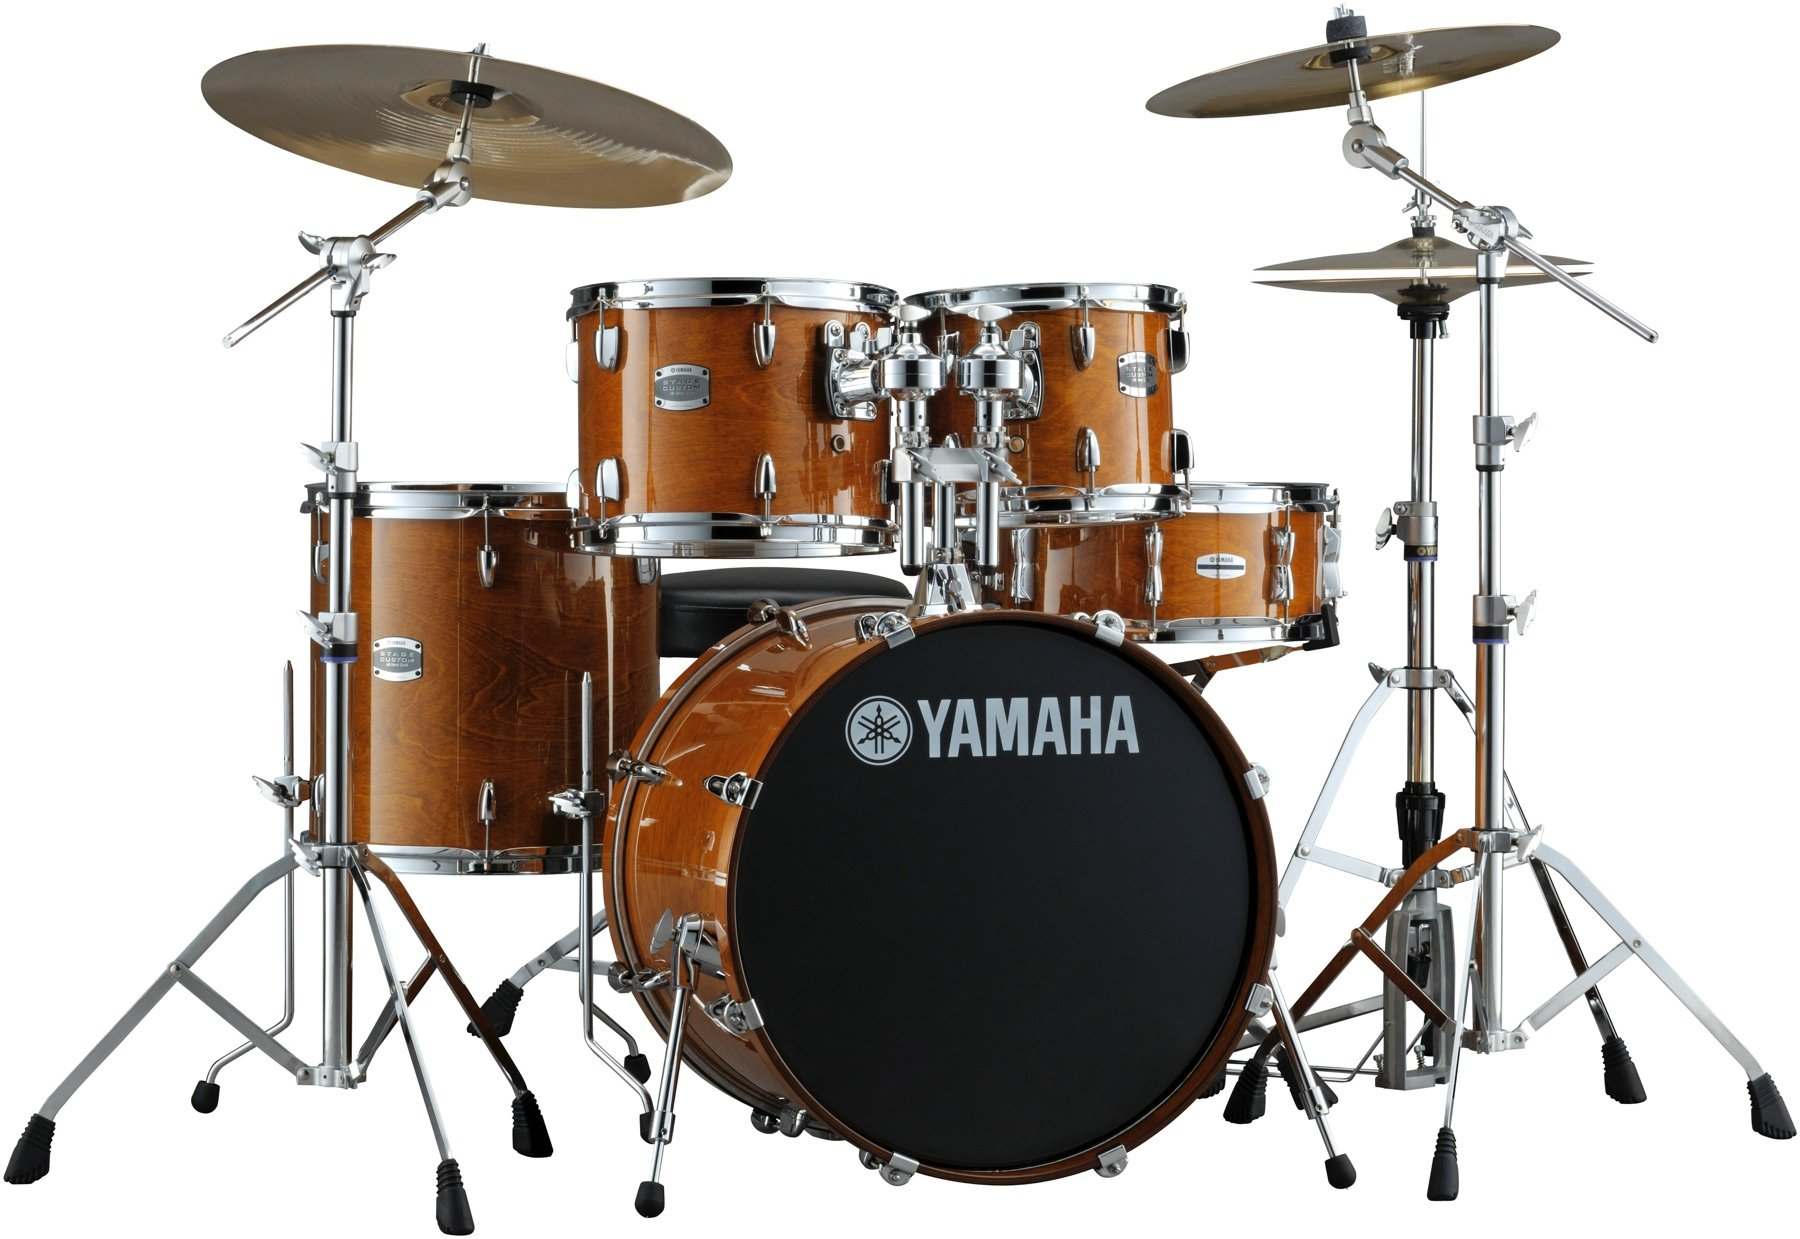 Yamaha Stage Custom Birch Drum Set - Honey Amber image 1